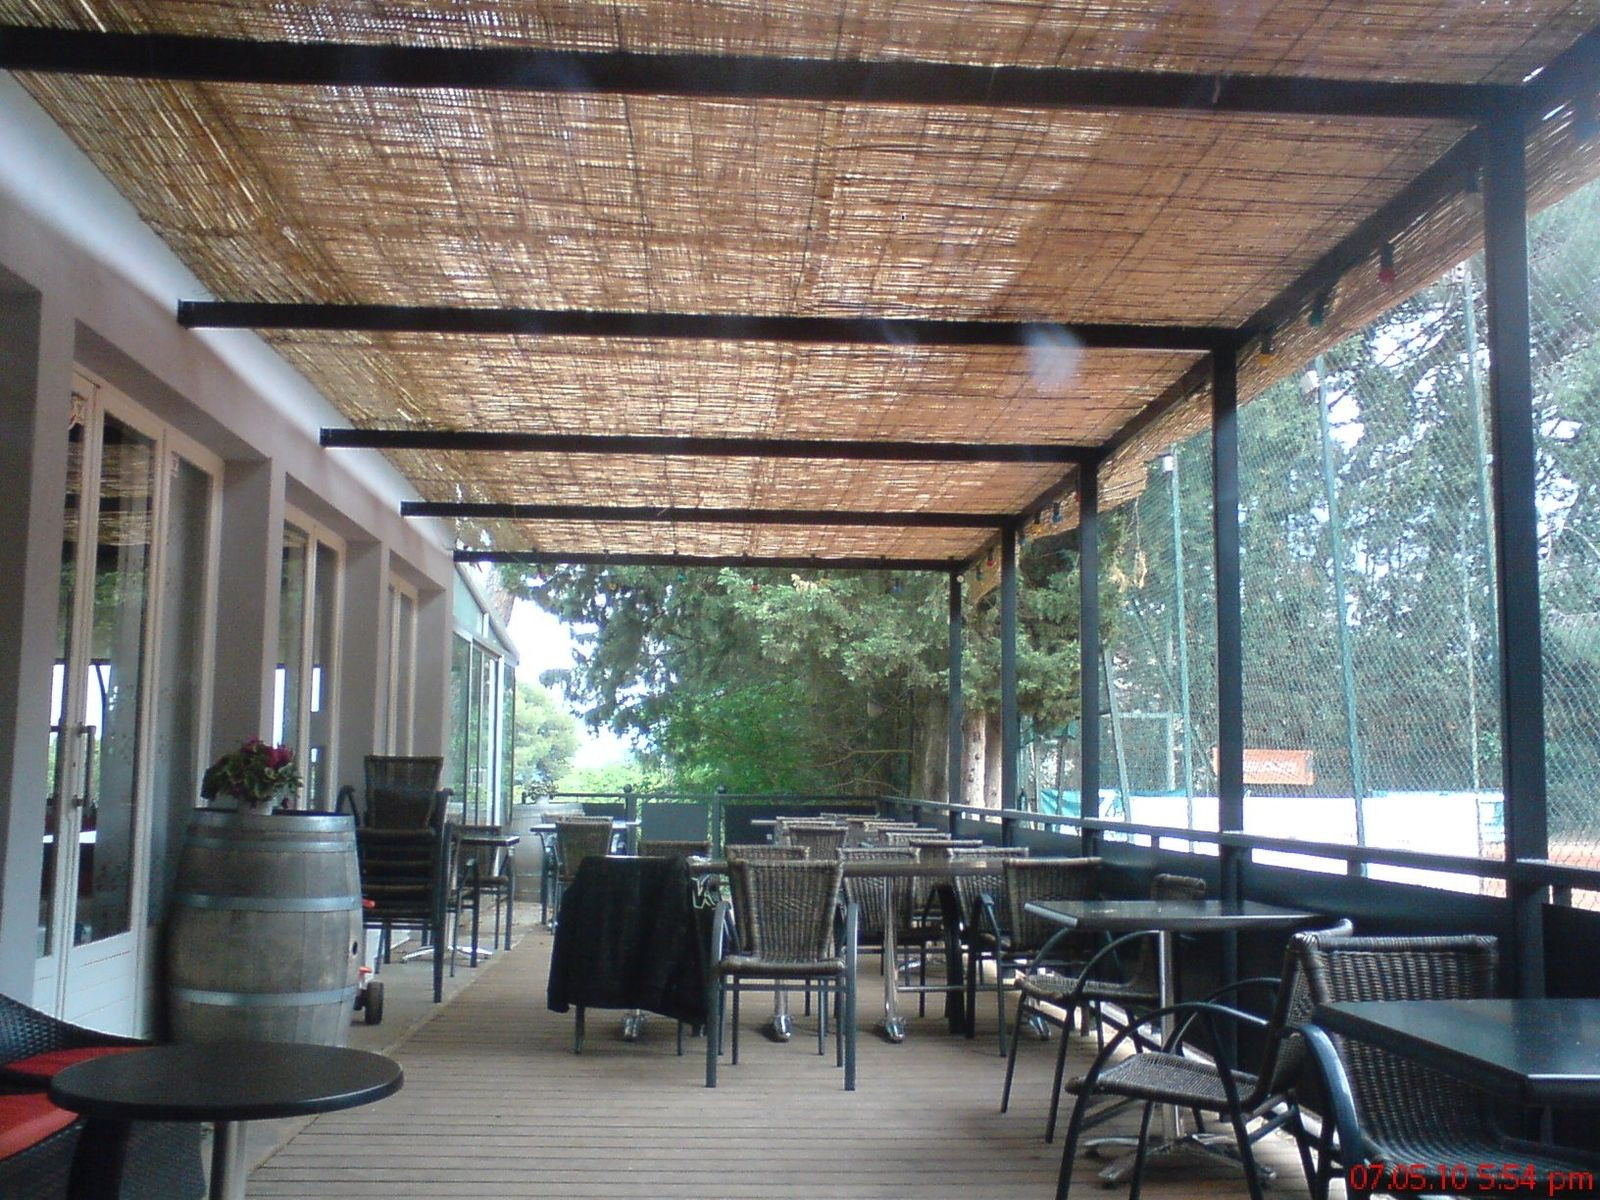 Toile De Camouflage Pour Pergola Handmade Set Club, New Pergola And Wood Deck By Steel